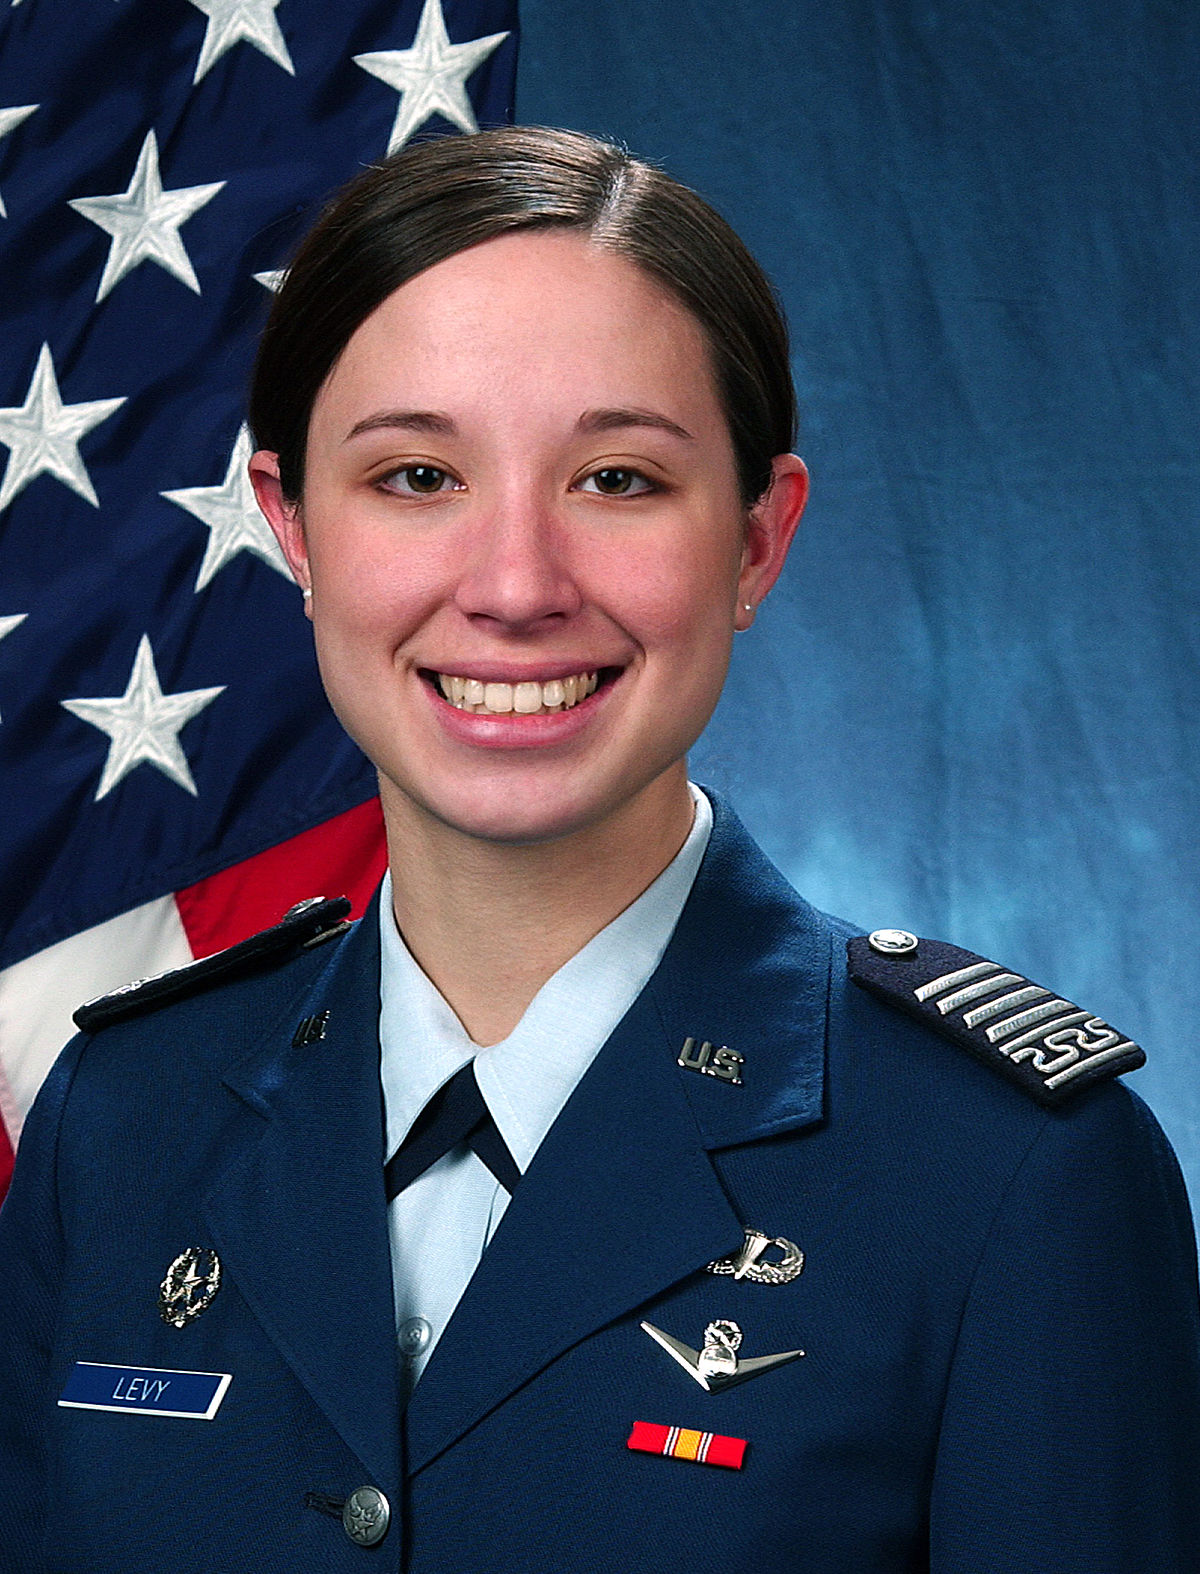 Usafa cadet dating